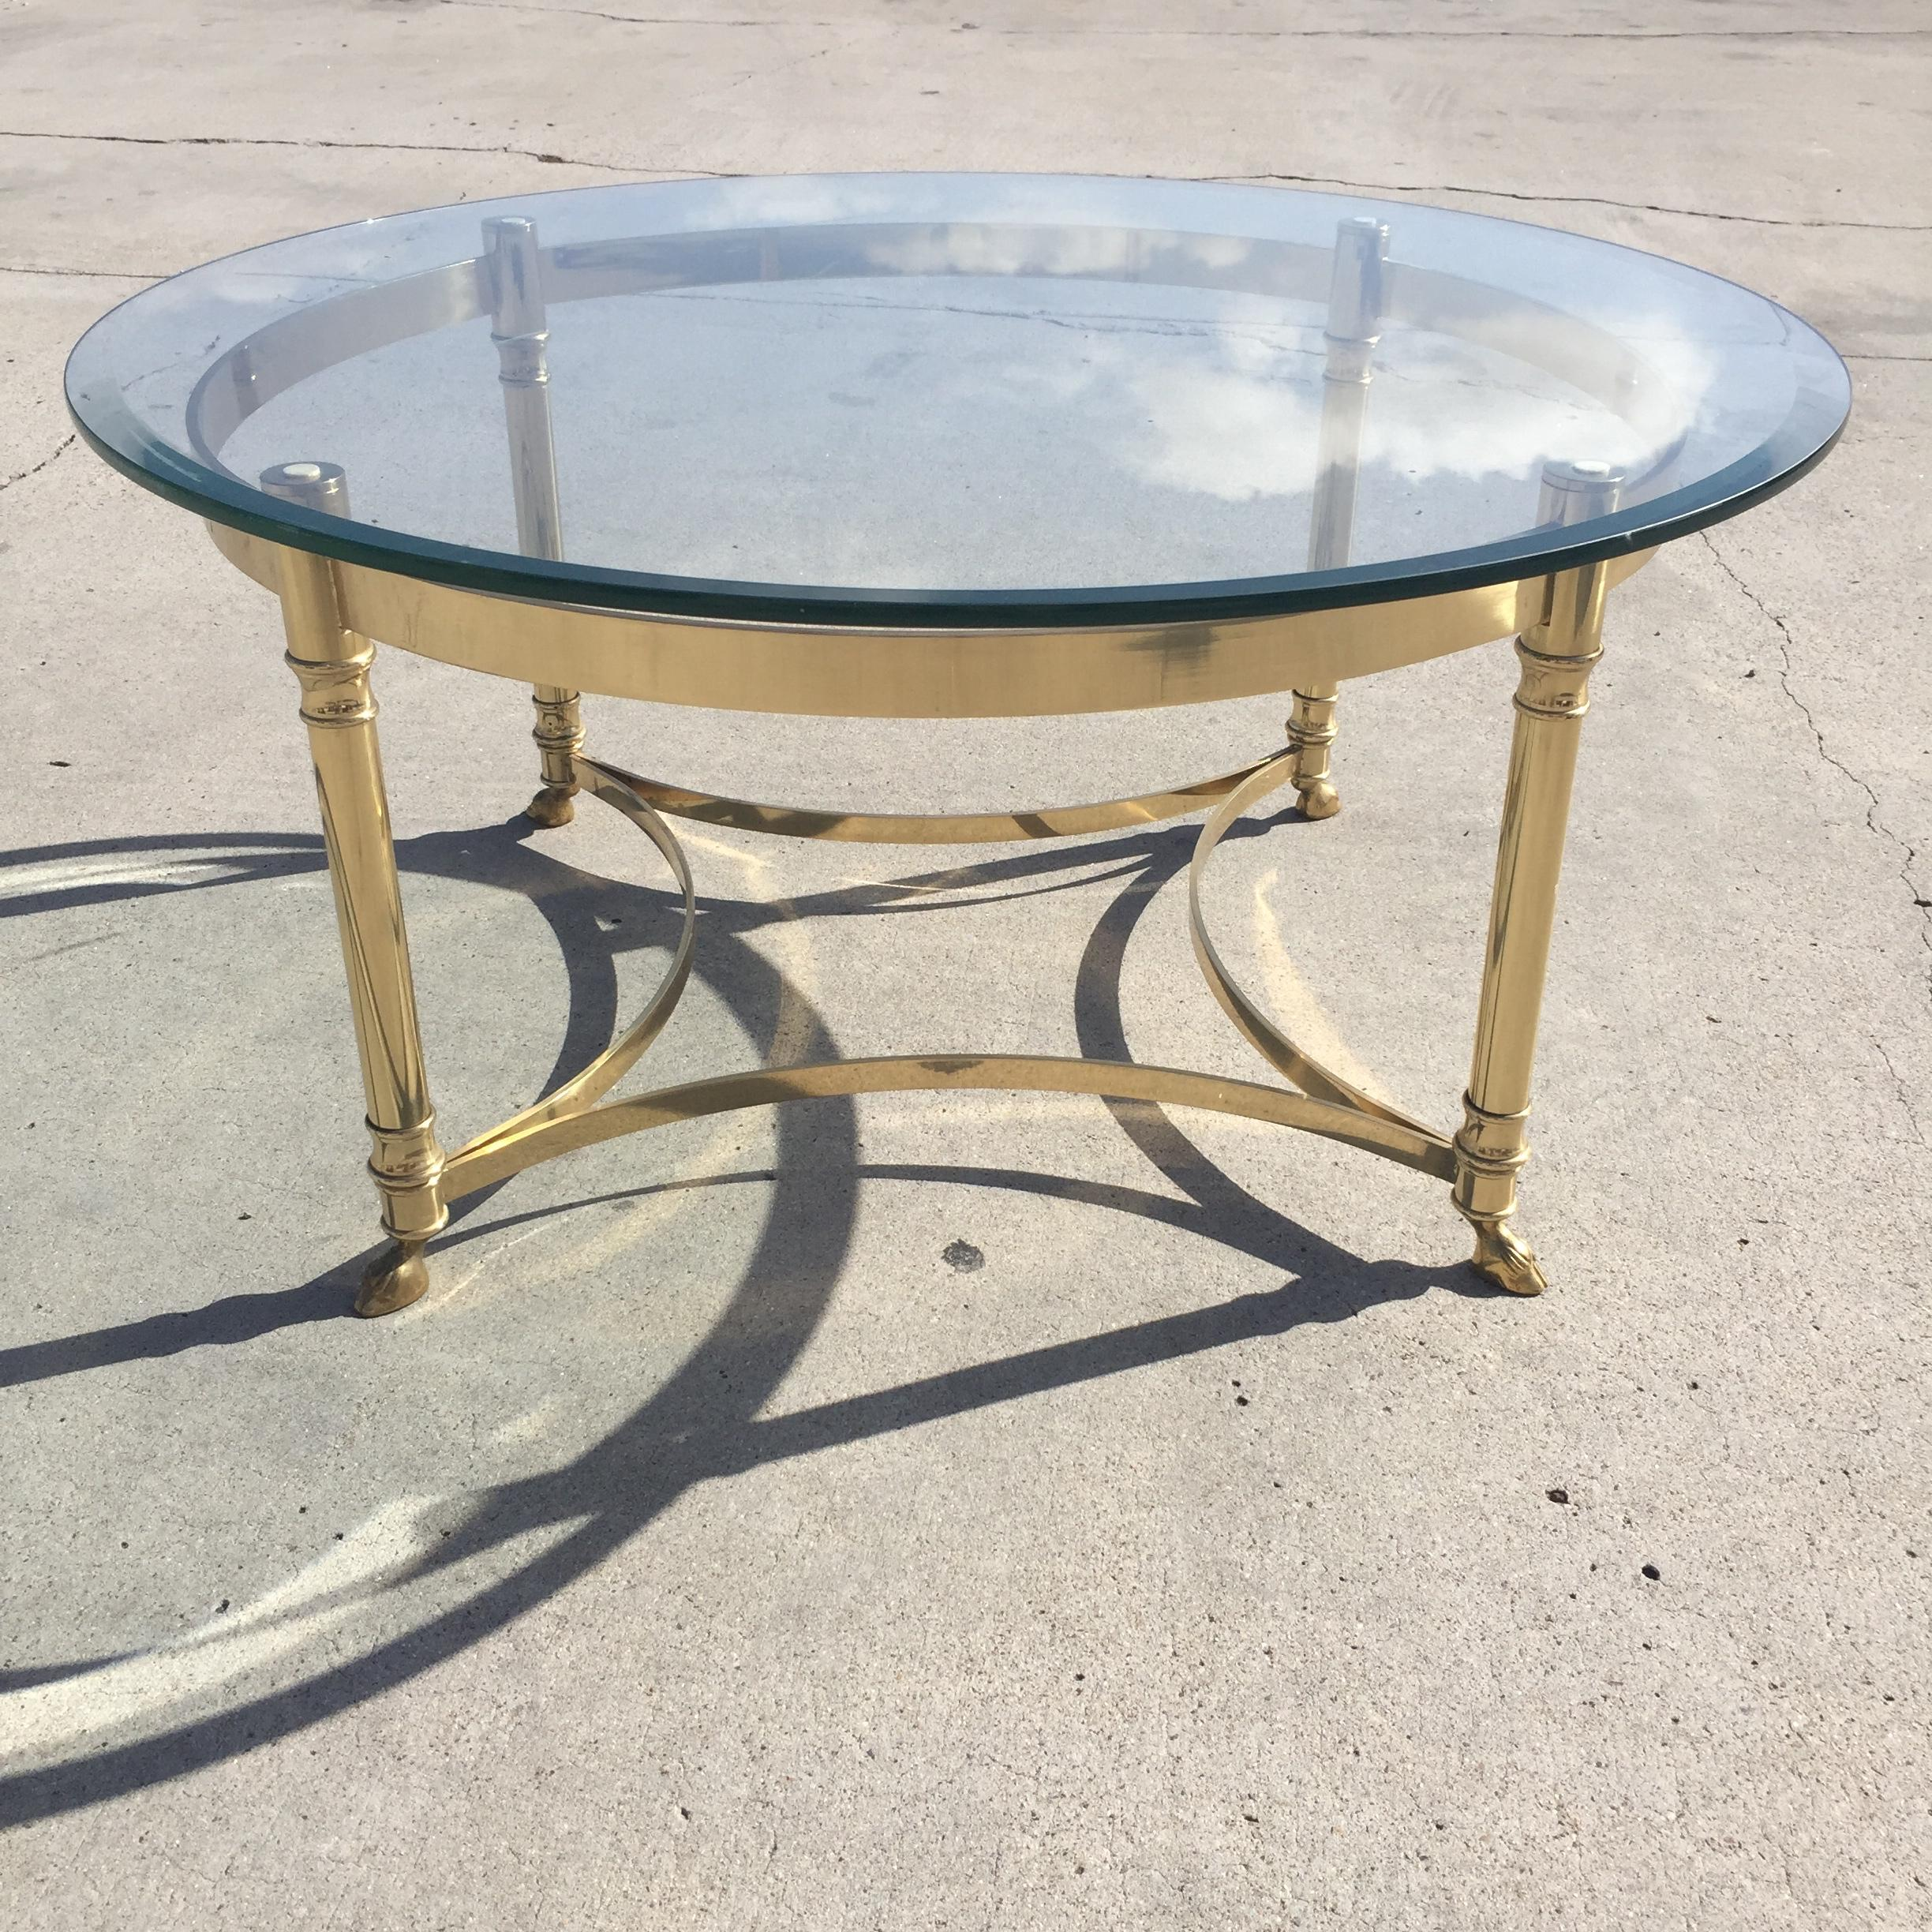 labarge hollywood regency round glass coffee table | chairish